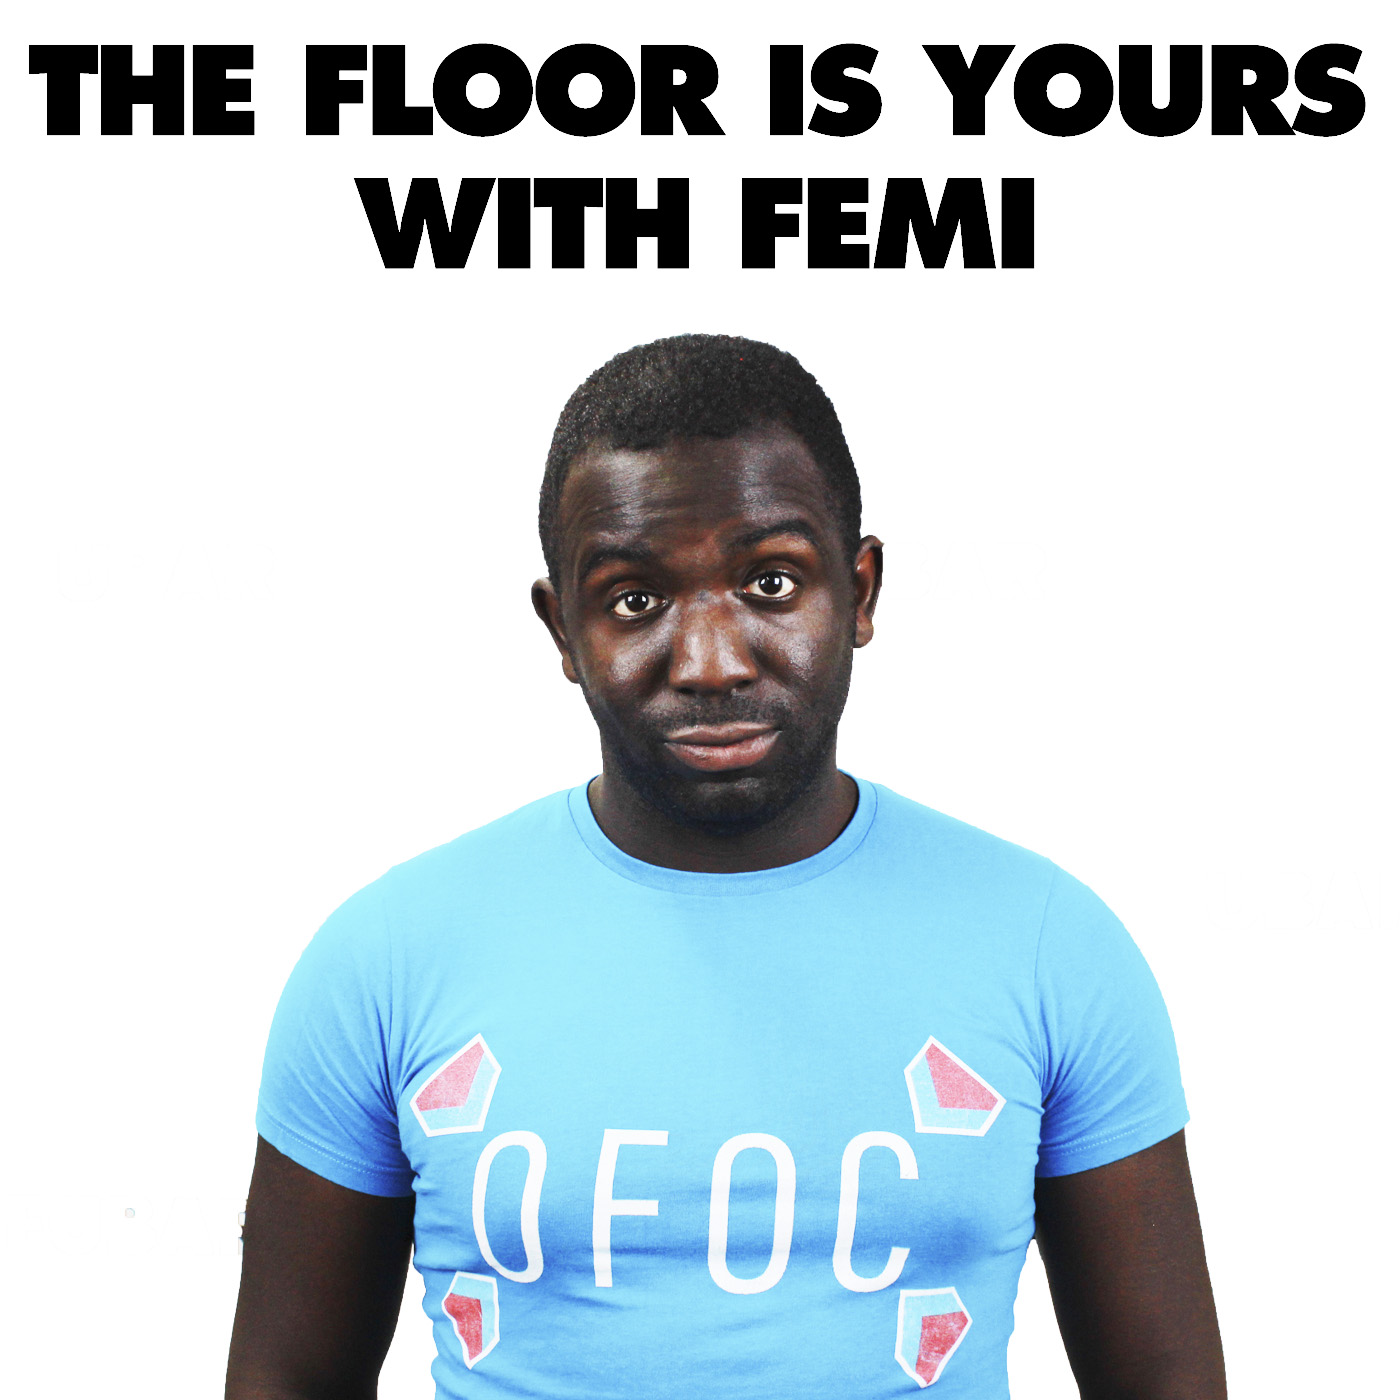 The Floor Is Yours with Femi